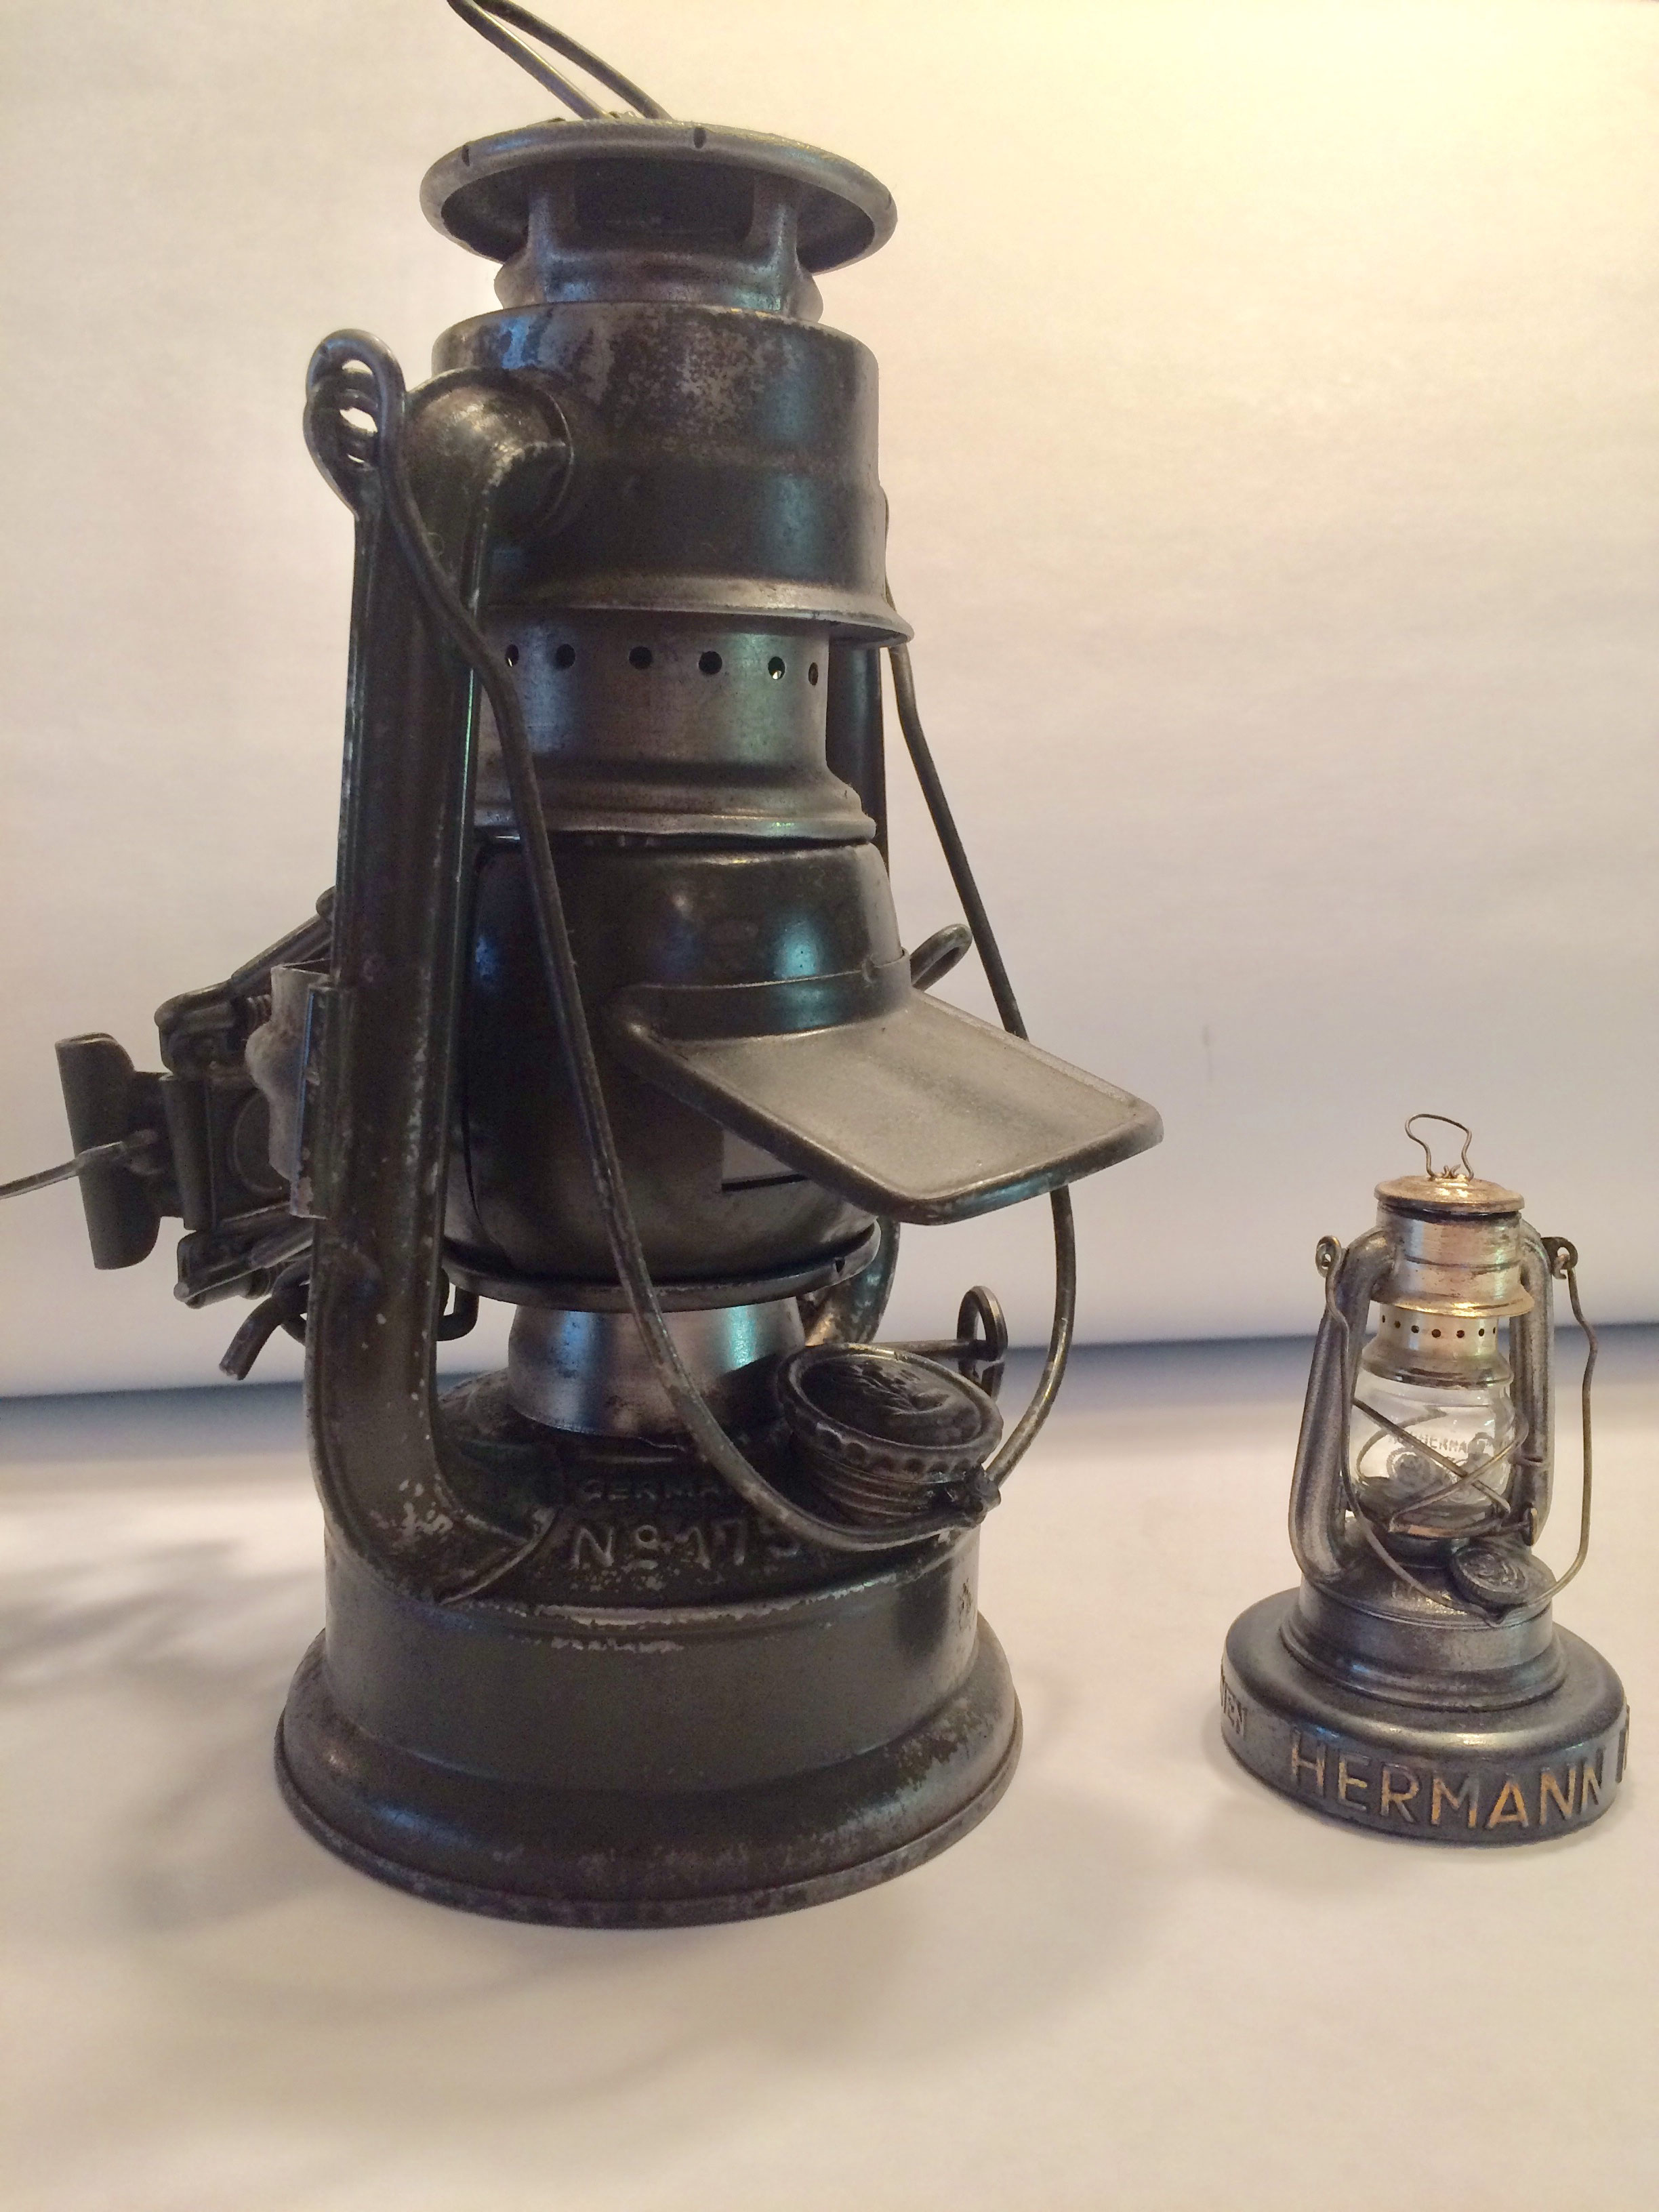 Globes For Sale >> Feuerhand Nr. 175 - Blackout 'cap' WW2 War Lantern - The Loveland Lantern Collection